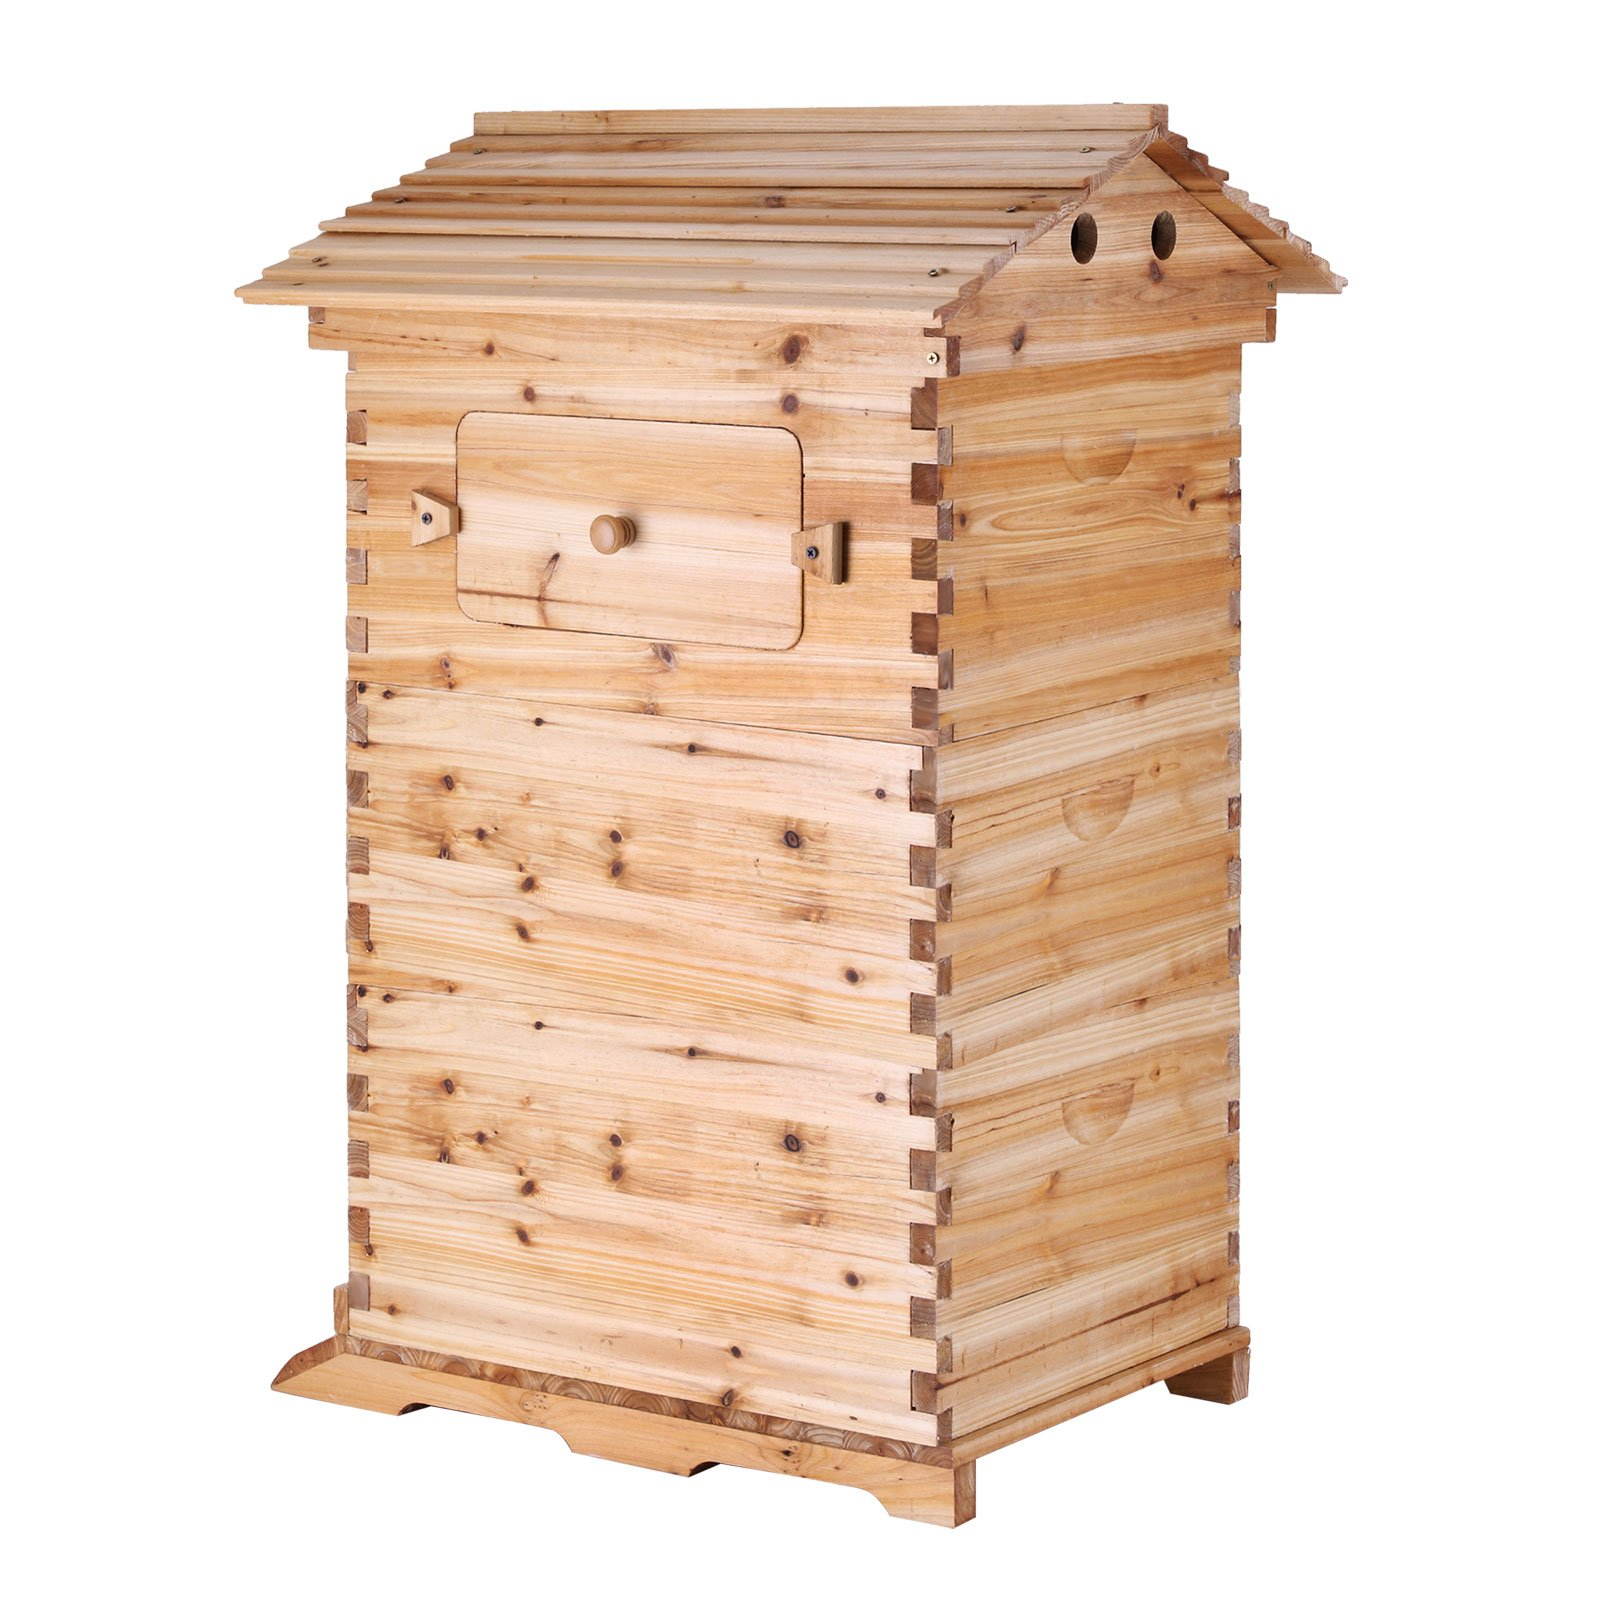 VEVOR Beehive Frames 20 x 16 x 21.5 inches Automatic Honey Bee Hive Wooden House